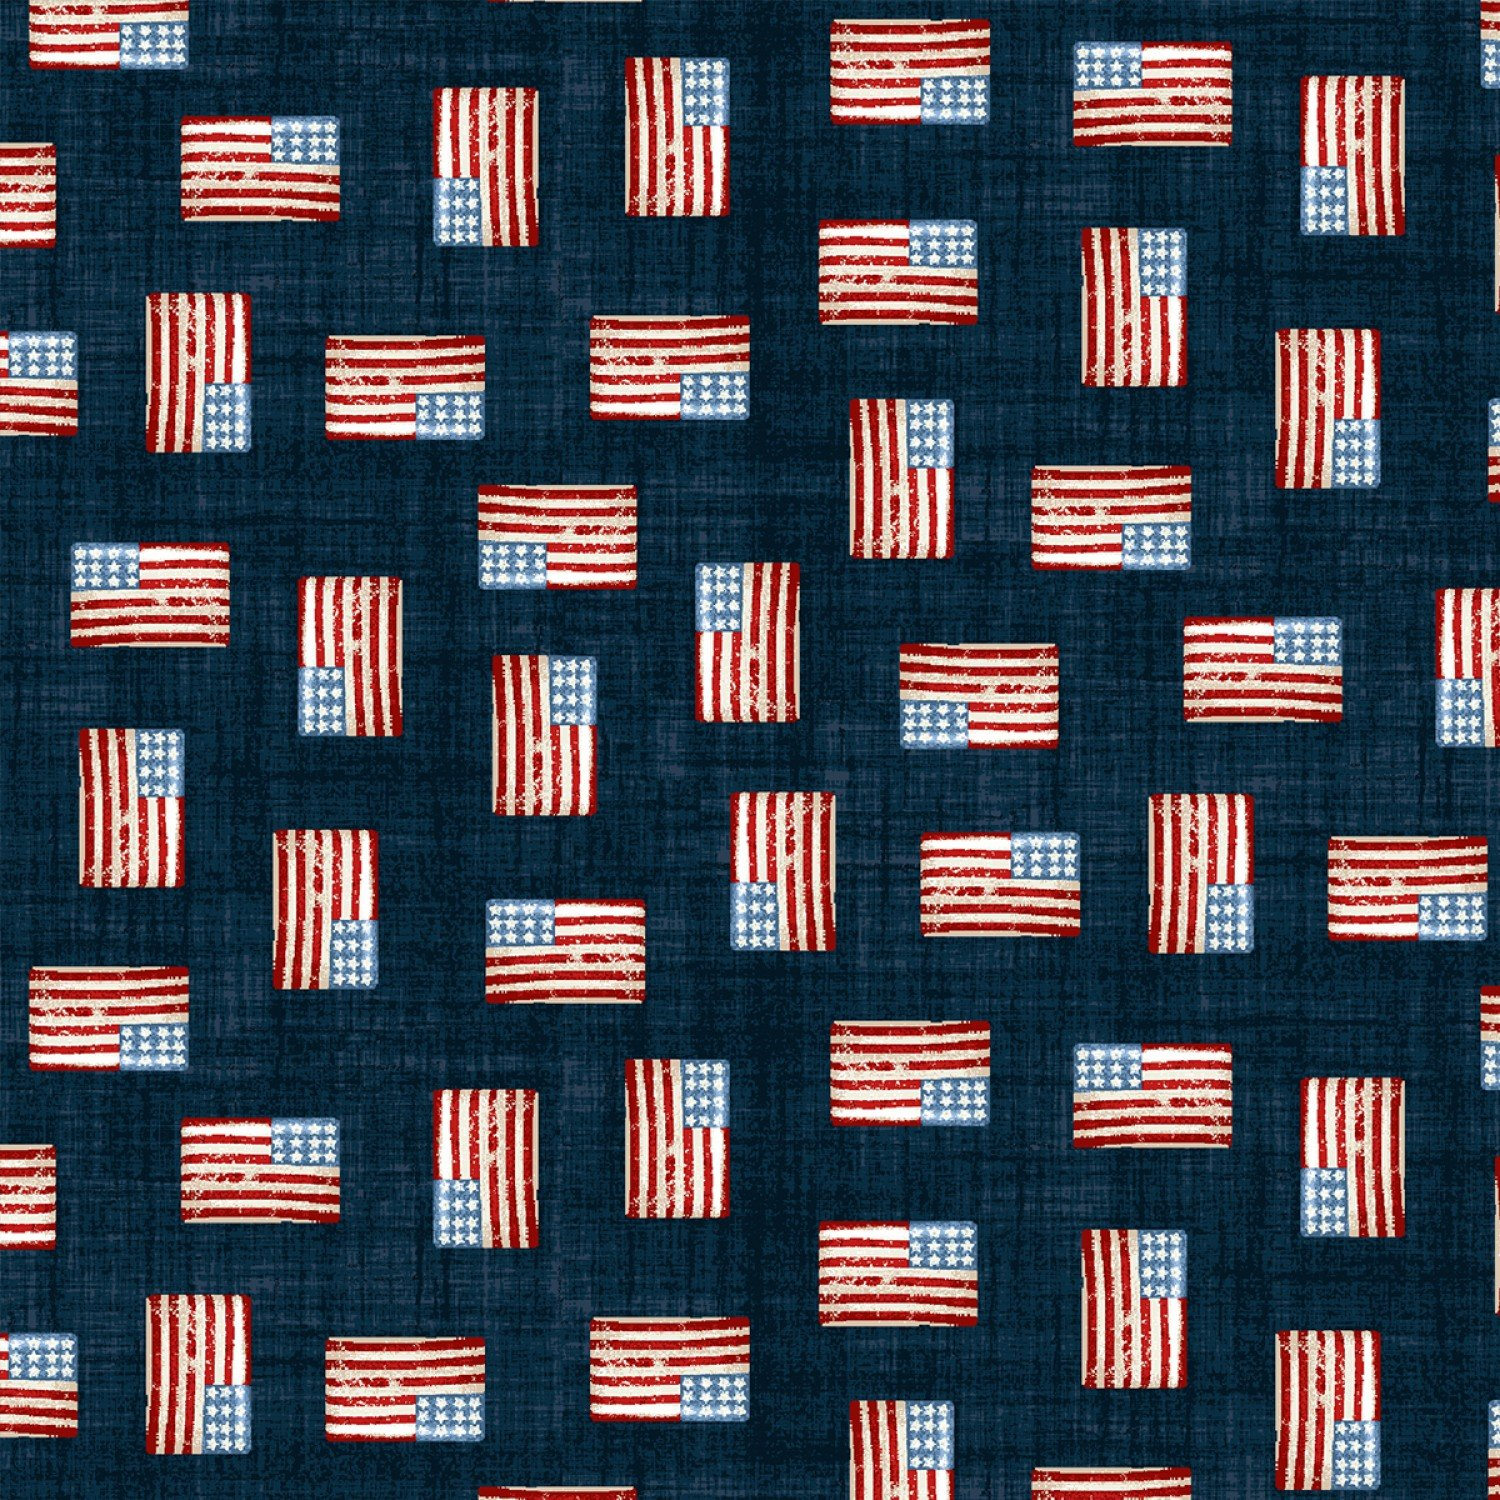 All American Flags